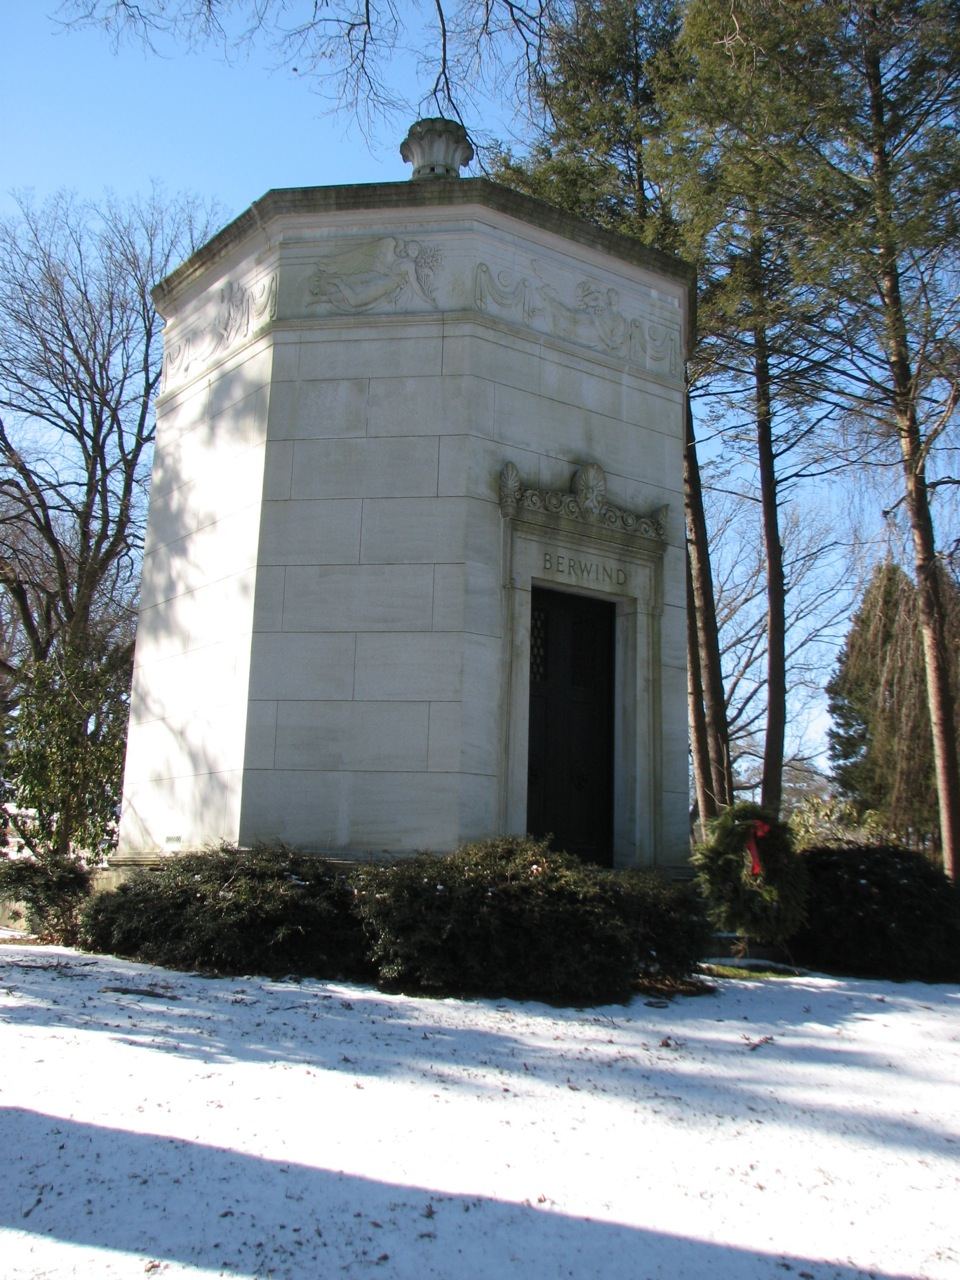 The octagonal Classical Revival mausoleum designed for the Berwind family.